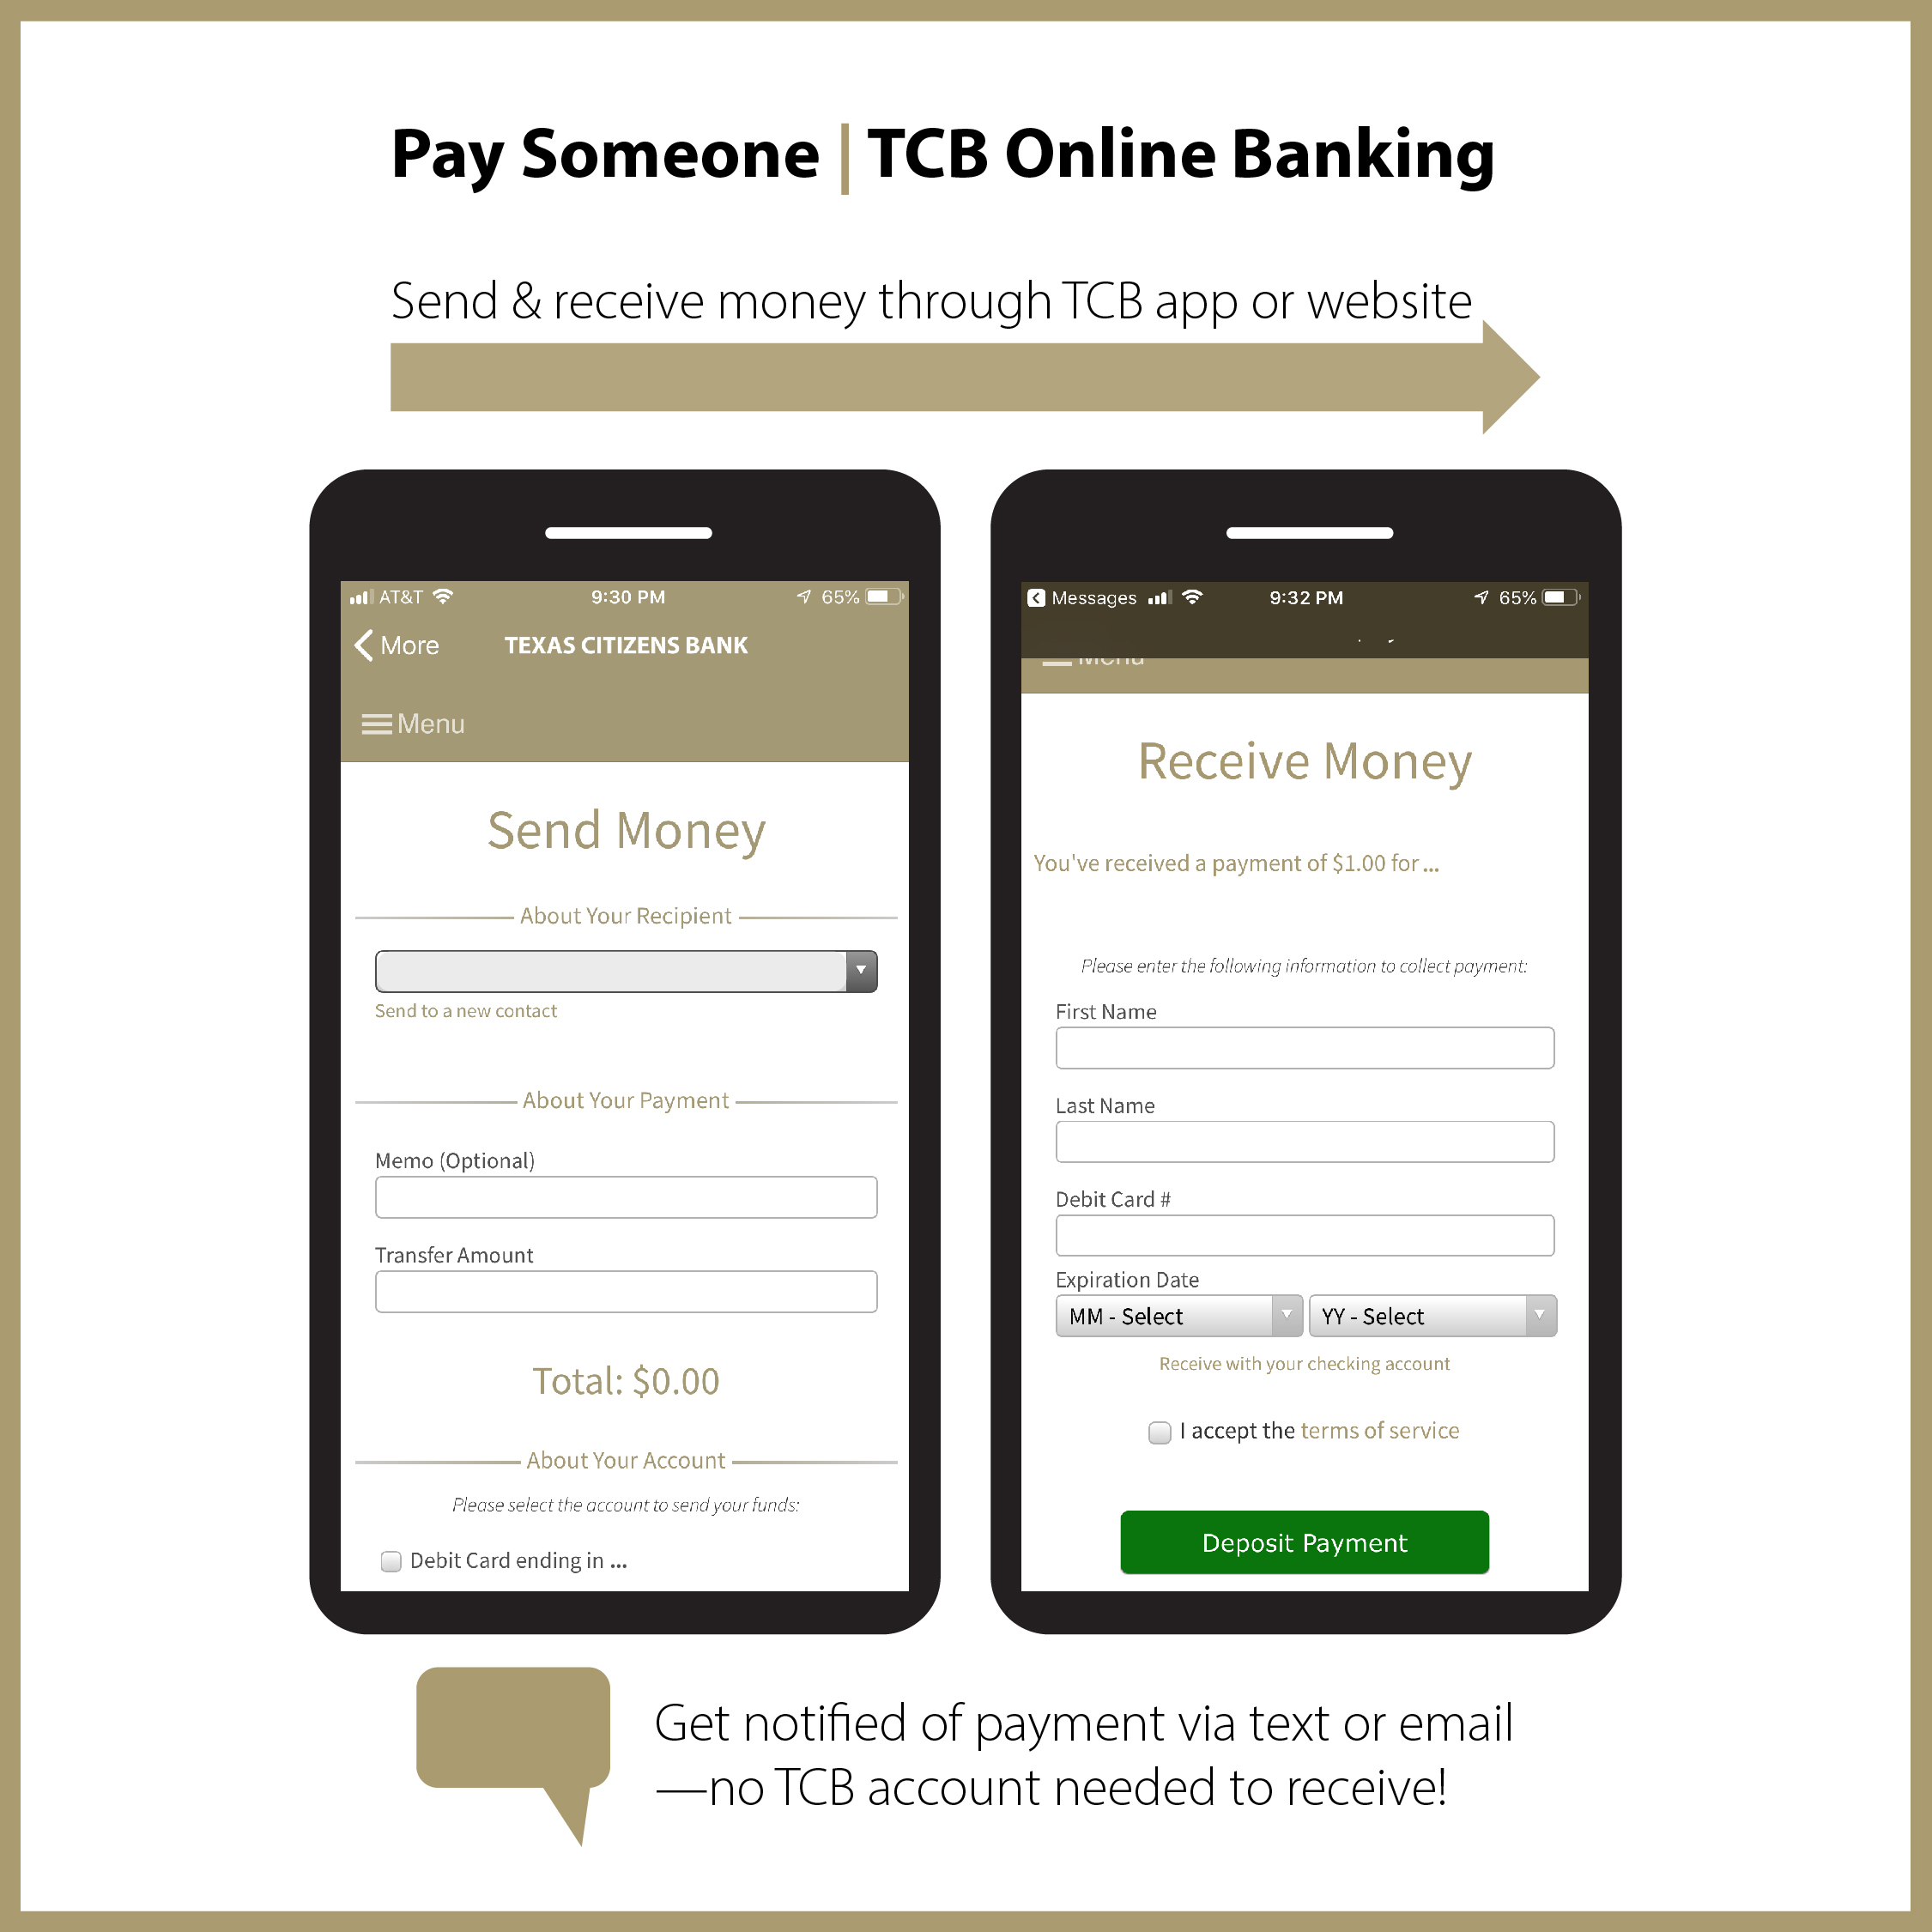 Pay Someone - Mobile